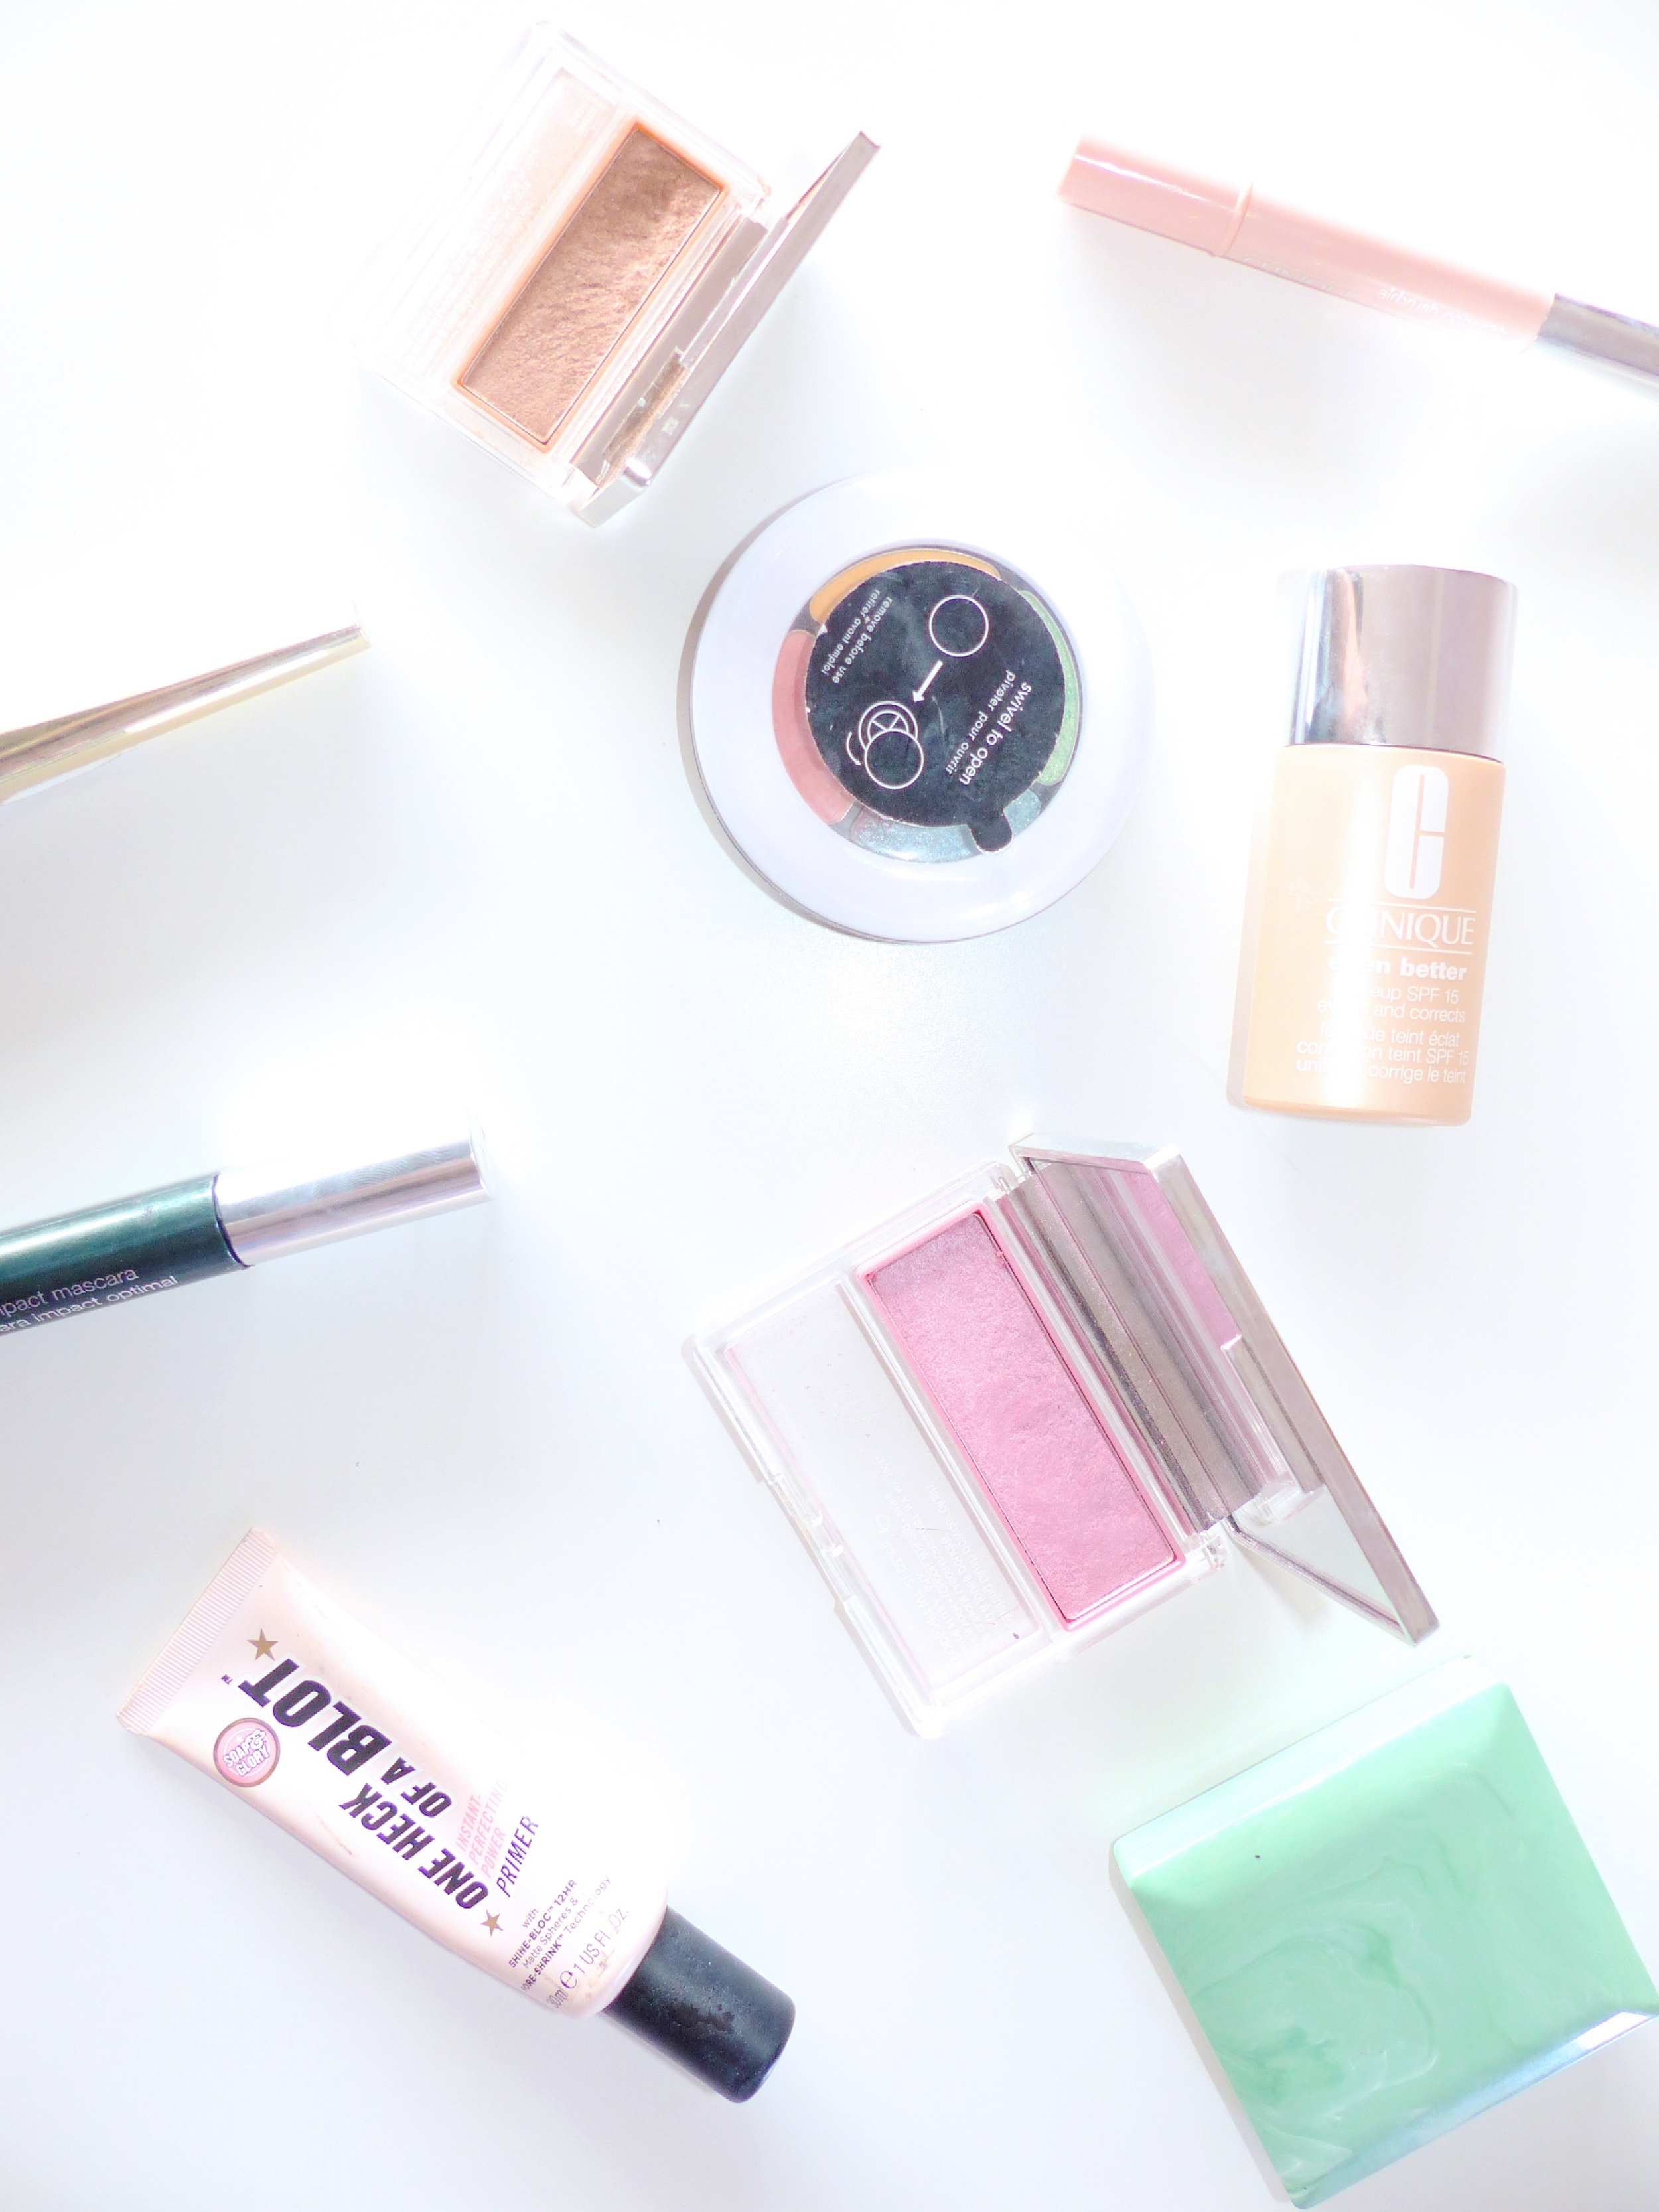 7 of the Best Things That Rock My Work Beauty Uniform